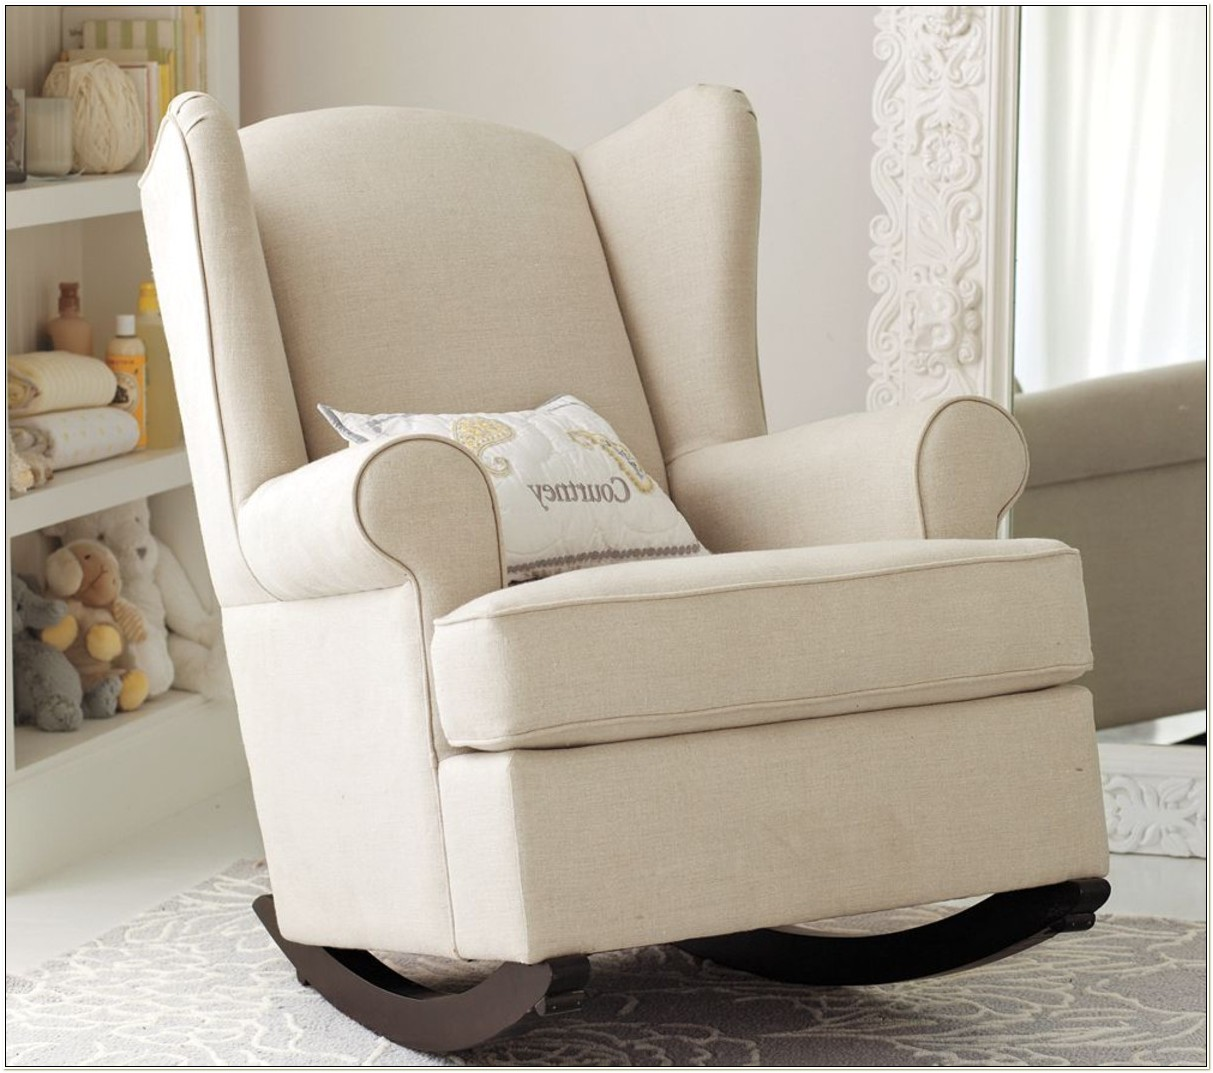 Comfortable Rocking Chair For Nursing